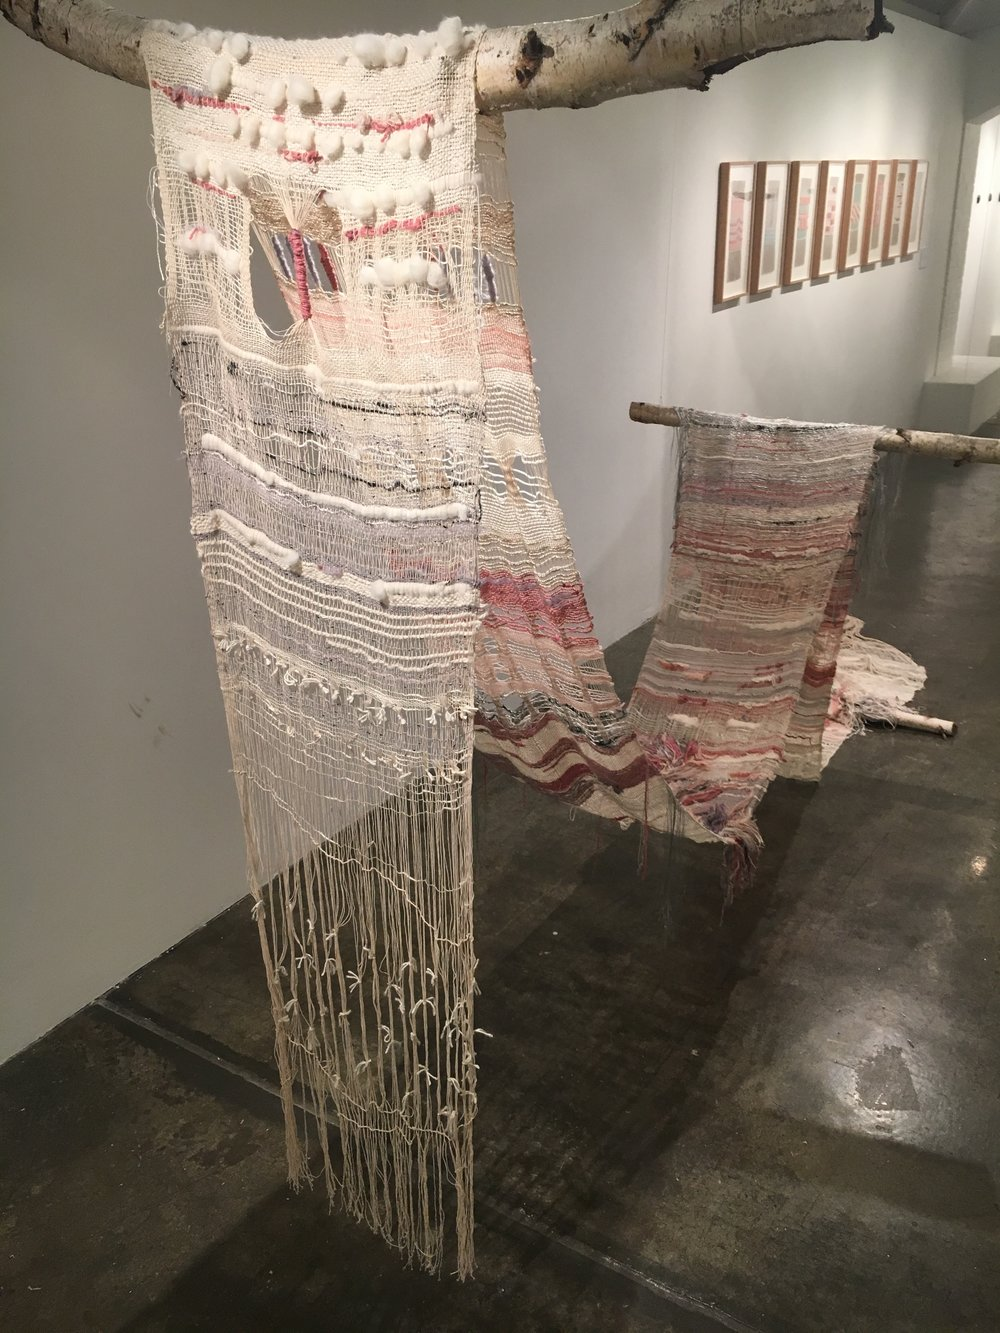 Undercurrent, 2016, Morgana Robb (Cotton, silk, wool, metallic thread, hand woven. 10 m x 50 cm)